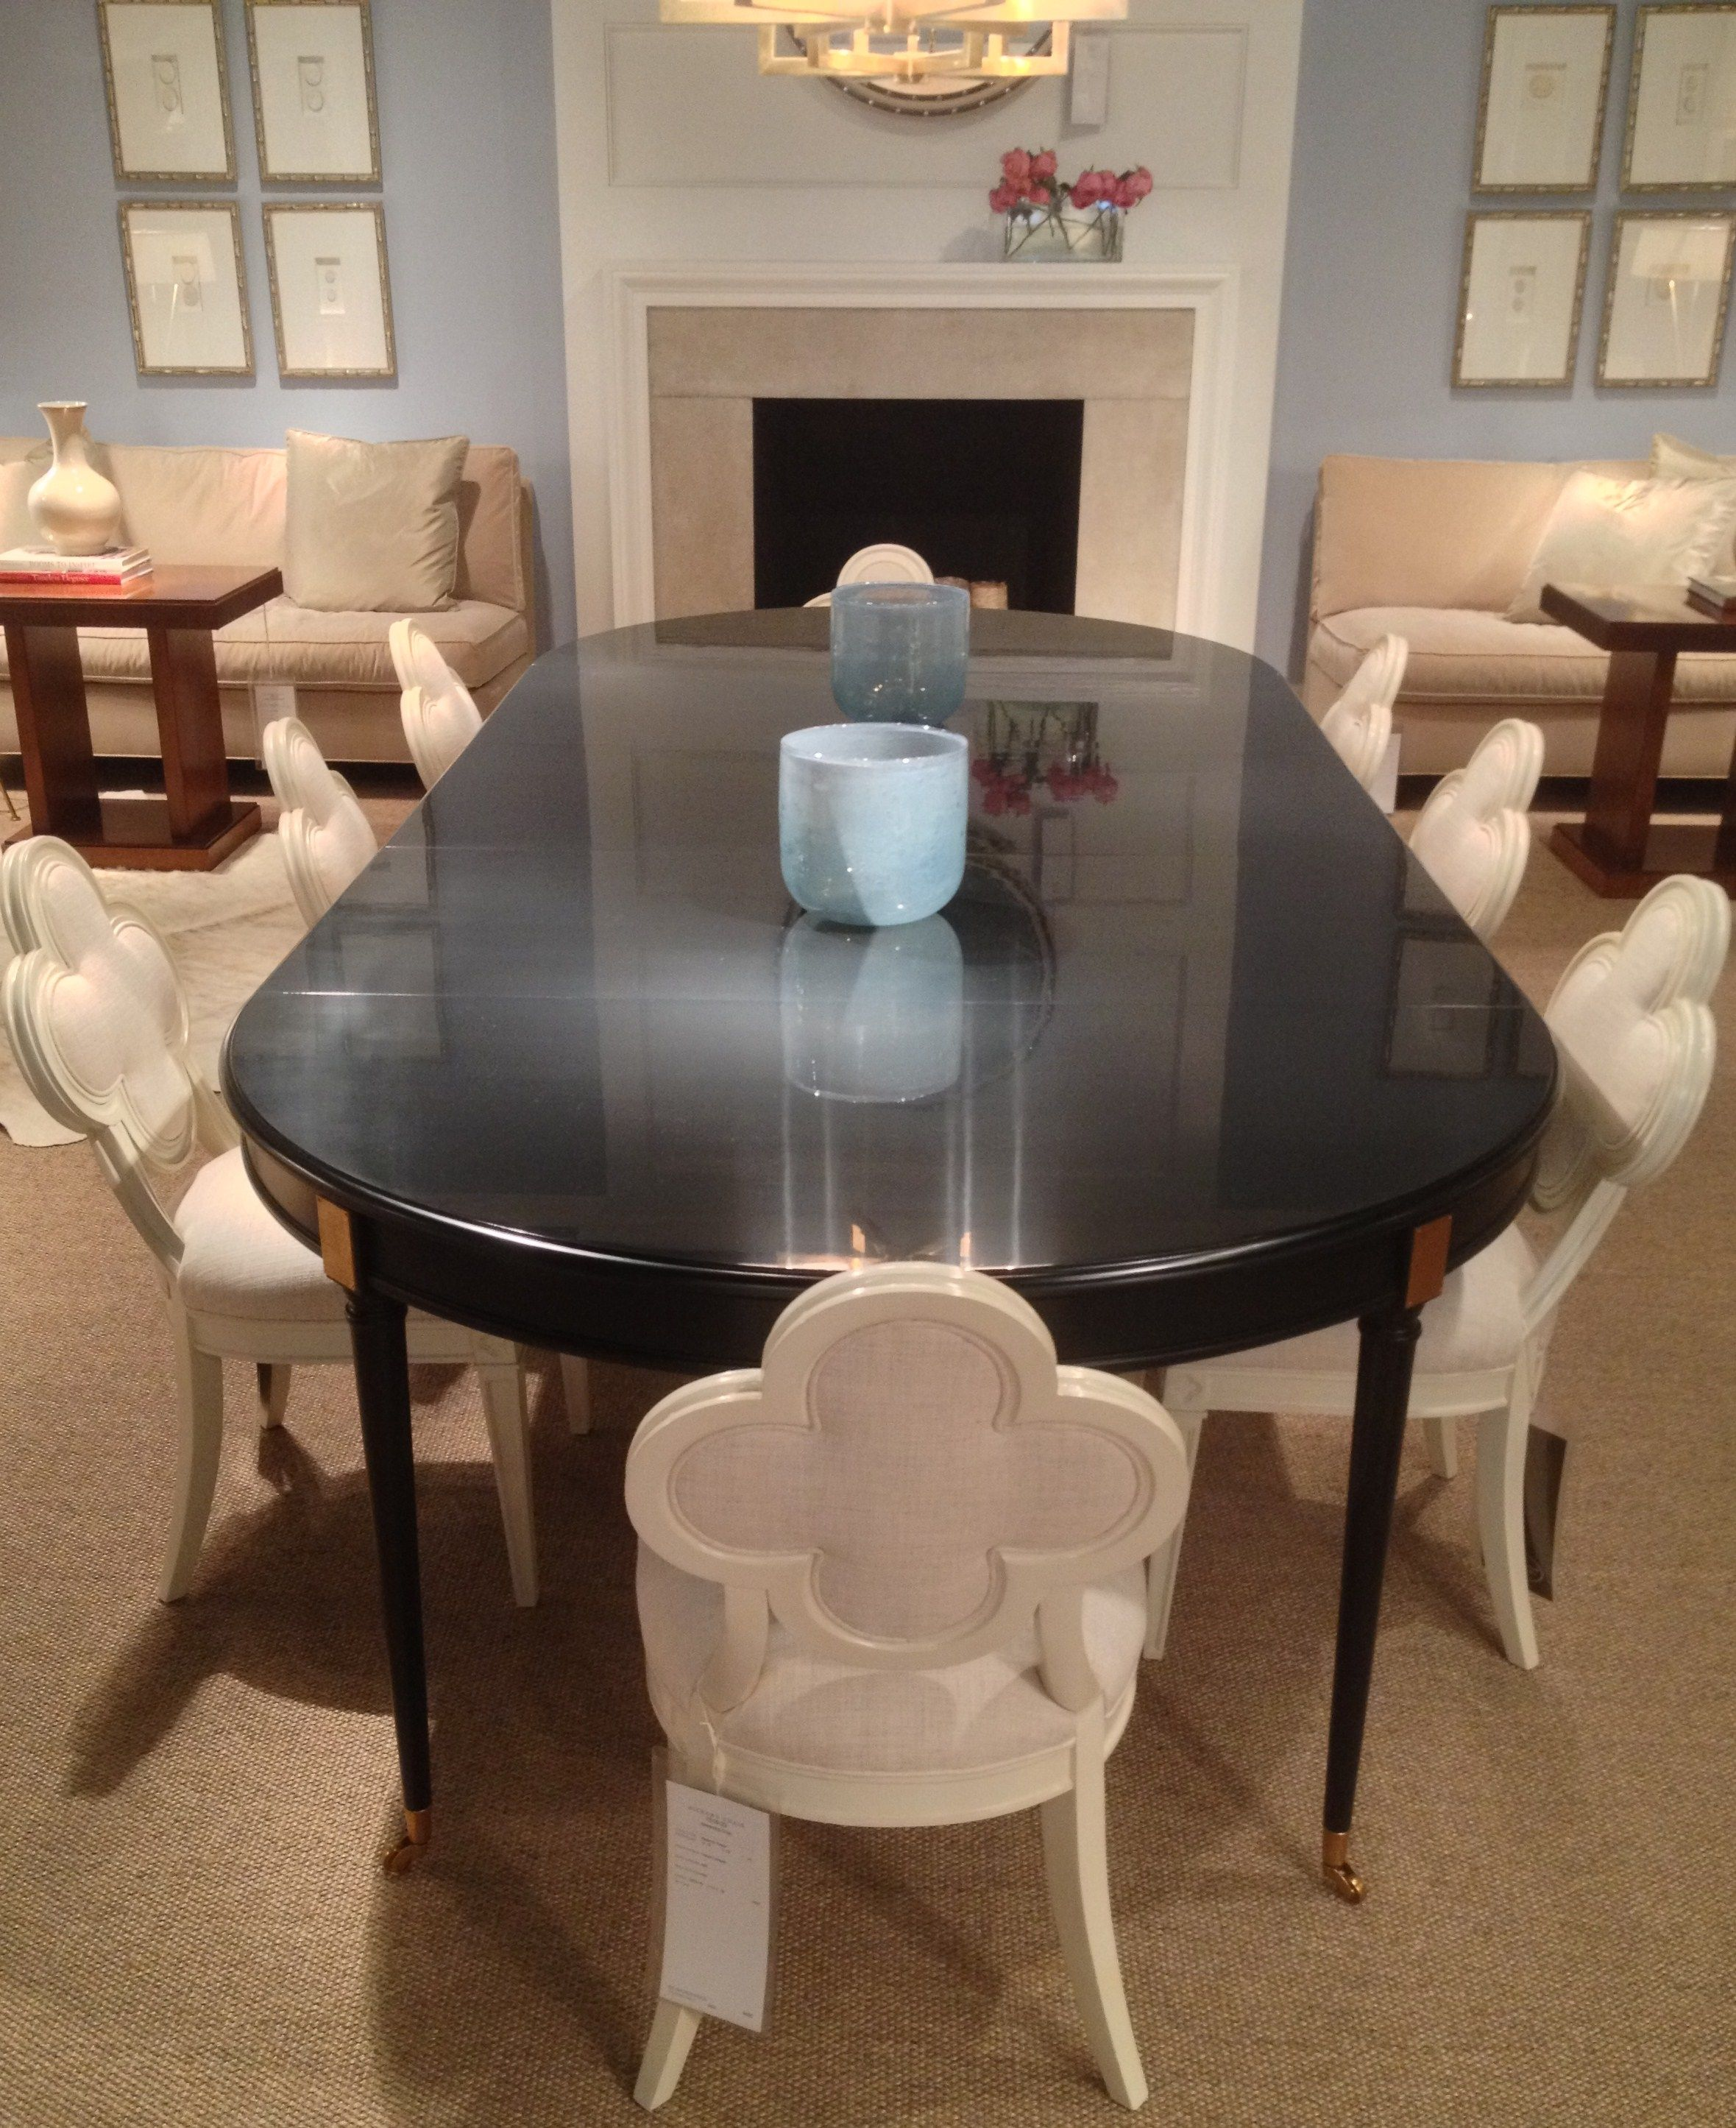 Hickory Chair Dining Room Sets  Httpfmufpi  Pinterest Glamorous Hickory Dining Room Sets Inspiration